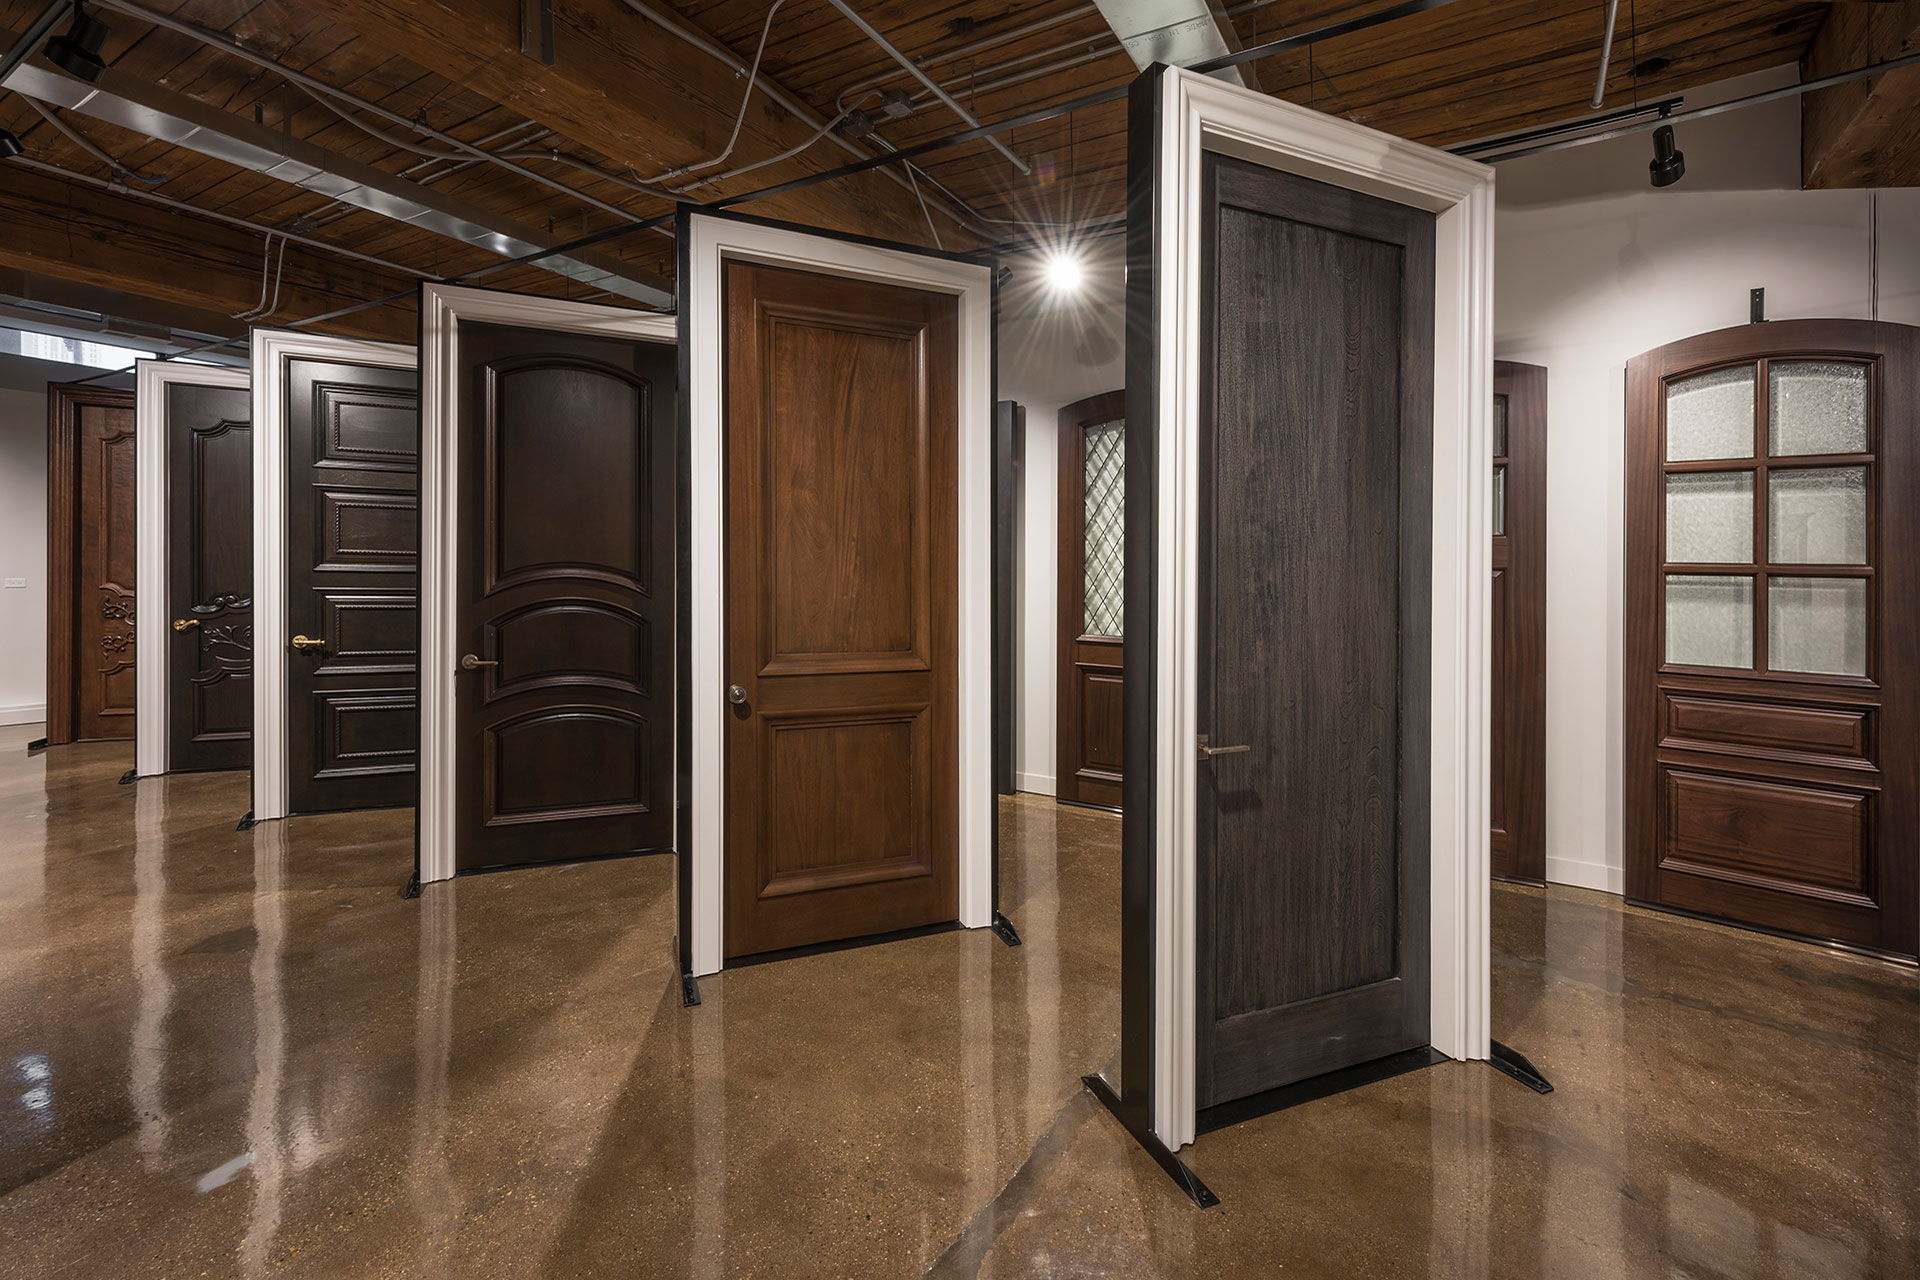 Glenview Haus Custom Doors and Wine Cellars Showroom in Chicago & Glenview Haus | Glenview Haus | Chicago. Custom Front Entry and ...